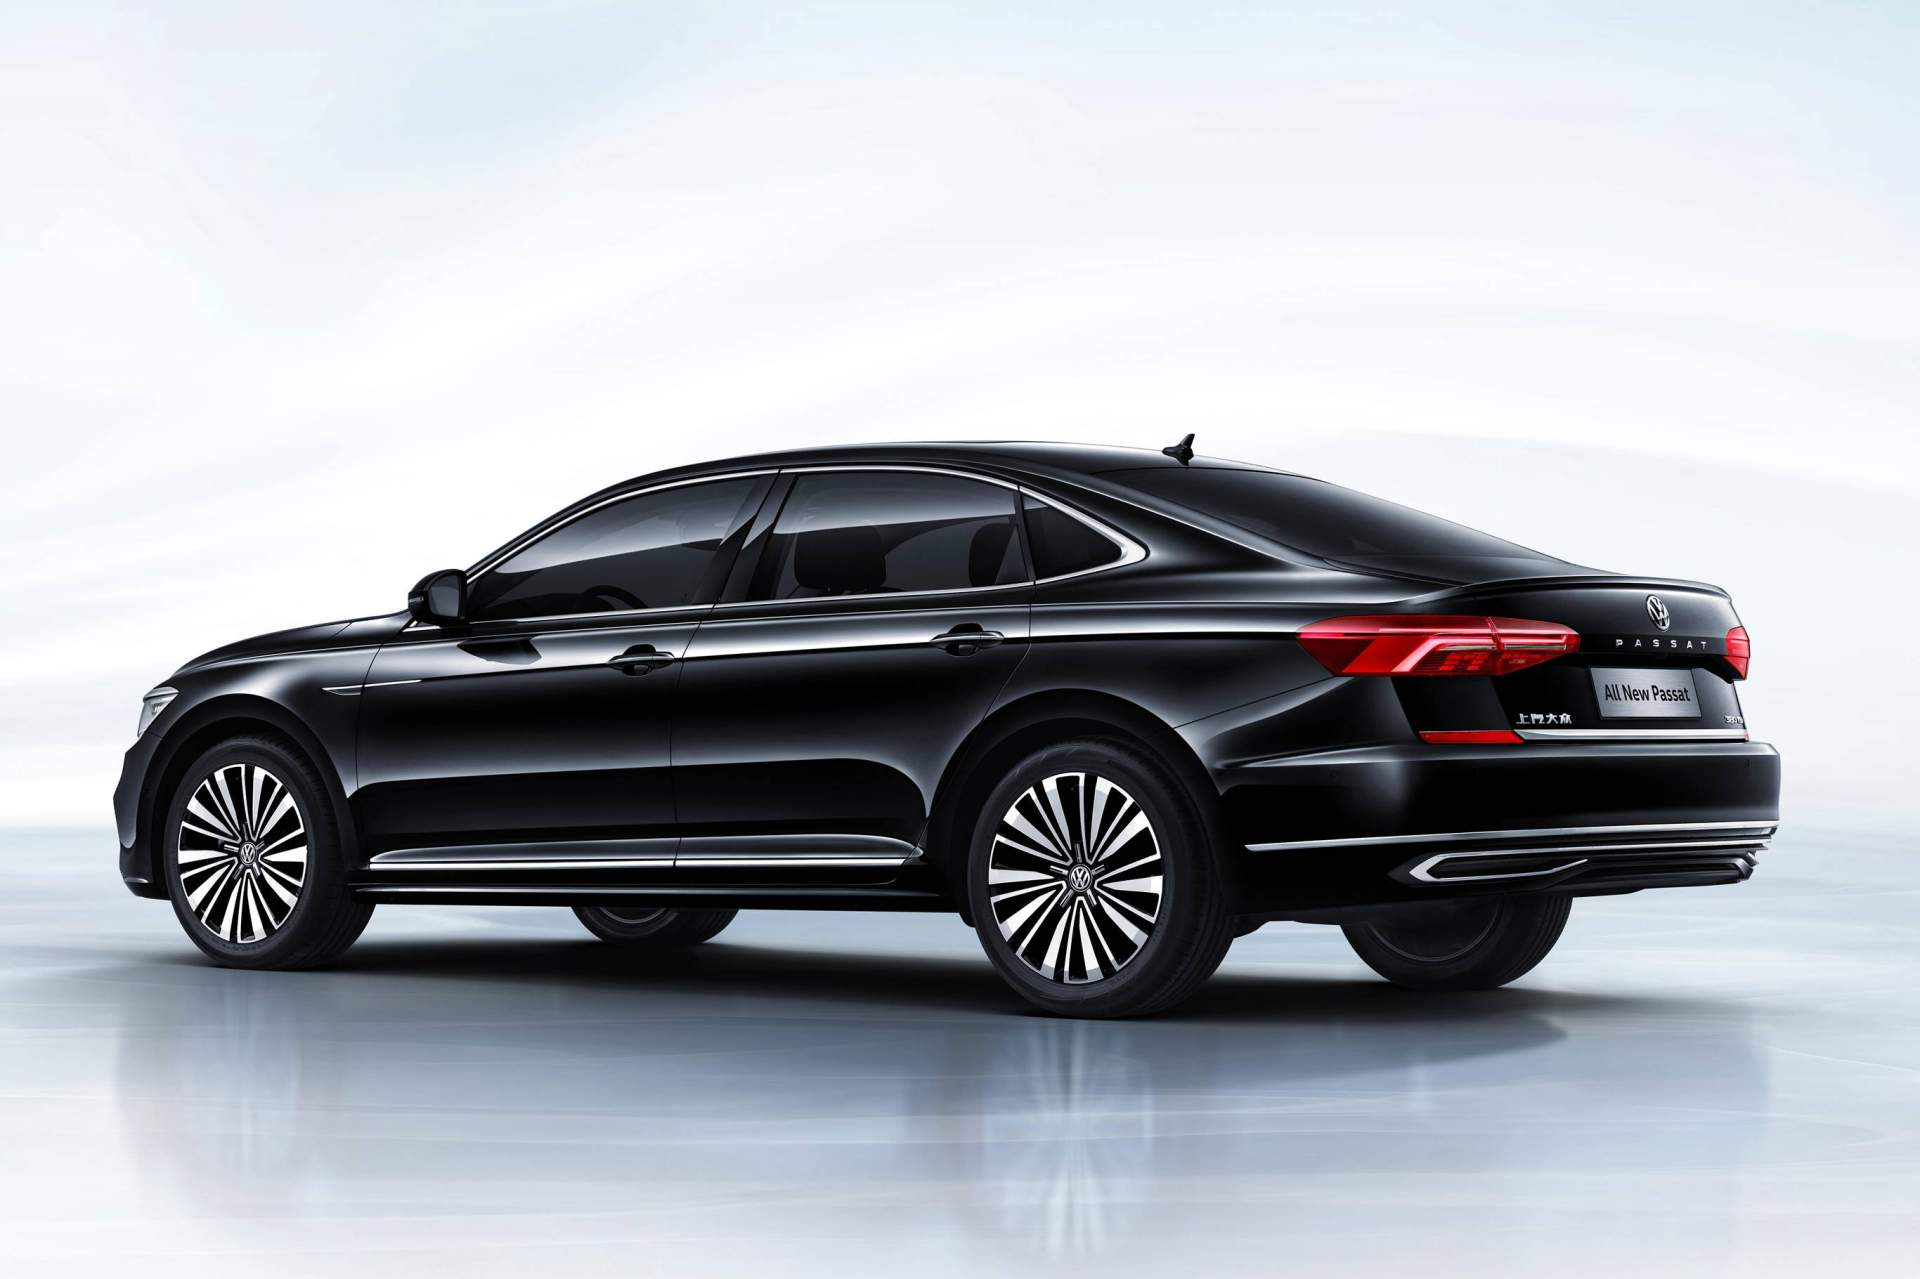 2019 Volkswagen Passat Revealed In China, Previews U.S. Model - autoevolution